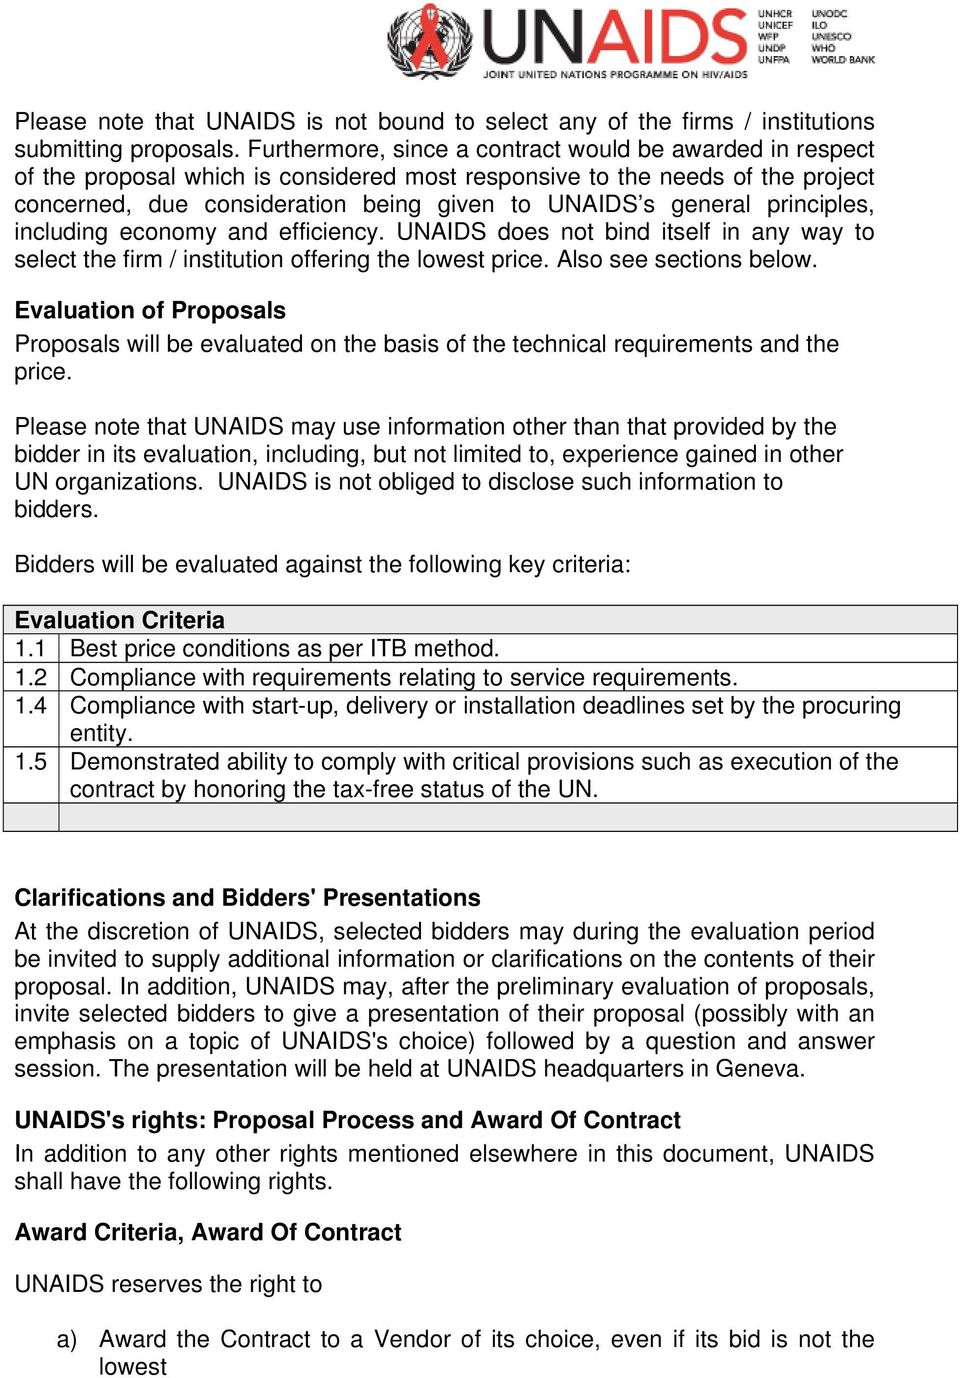 principles, including economy and efficiency. UNAIDS does not bind itself in any way to select the firm / institution offering the lowest price. Also see sections below.